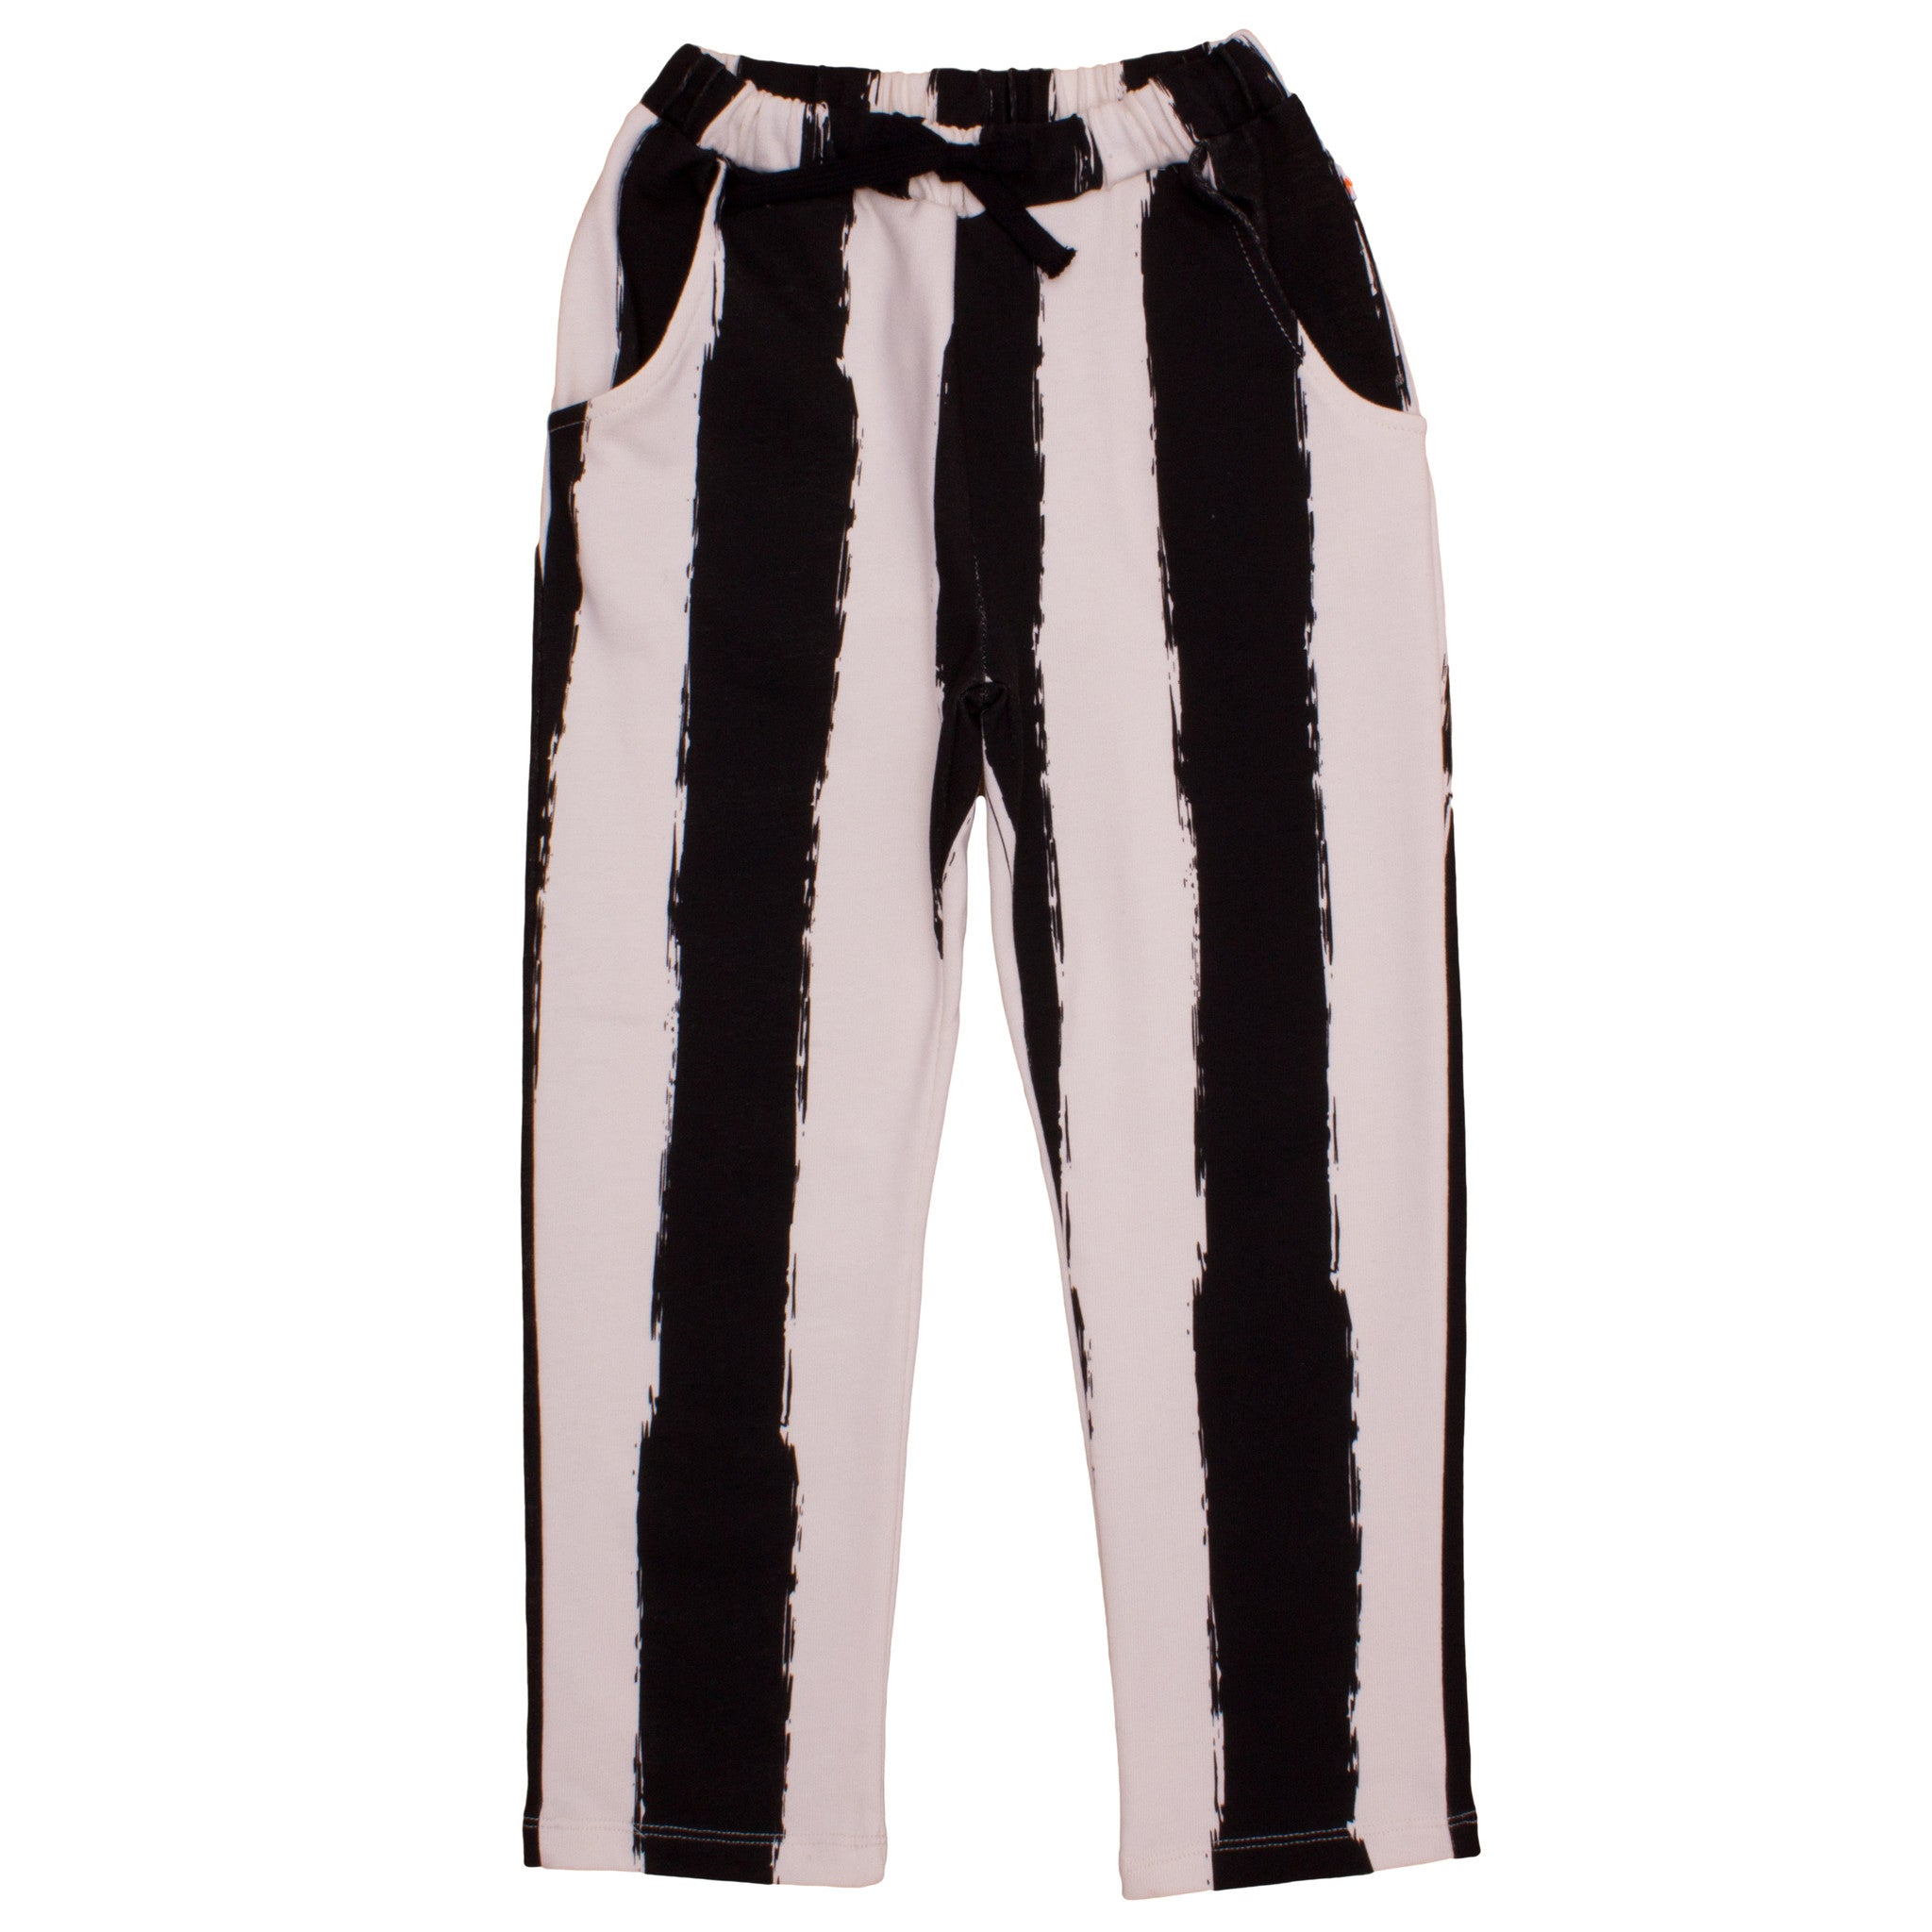 PANTS IN BLACK STRIPE XL